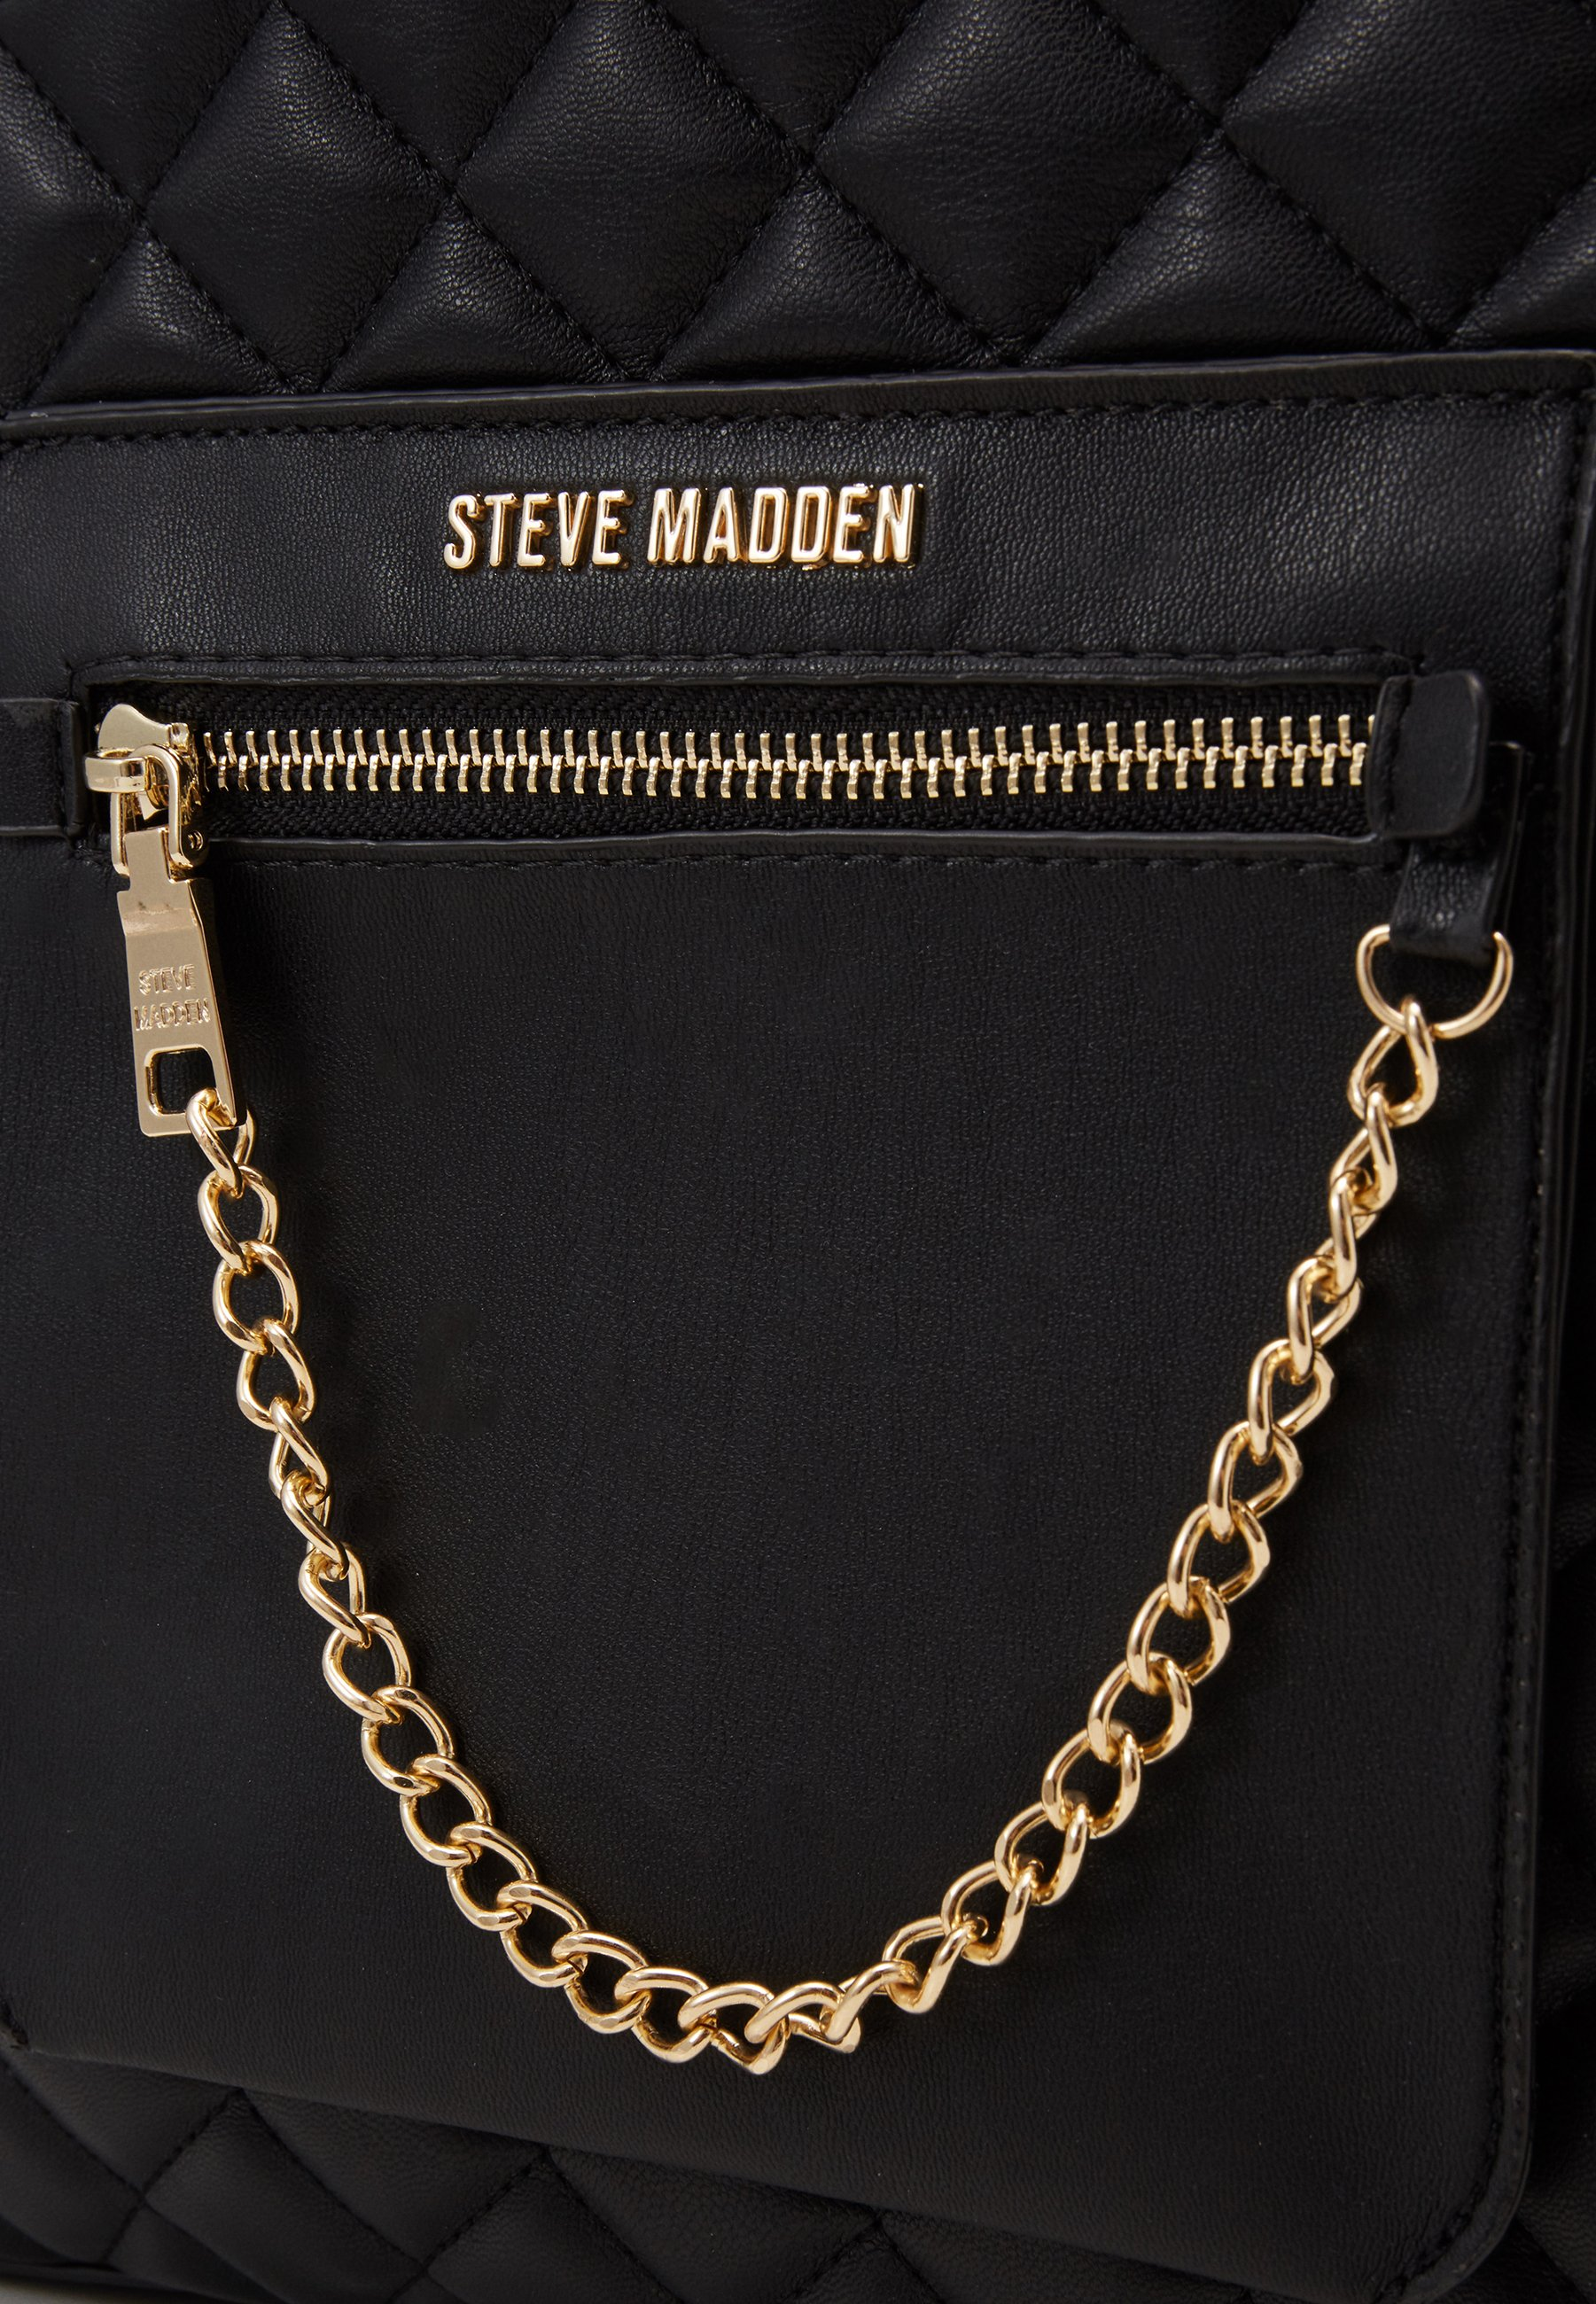 Steve Madden Bjaneen - Shopping Bag Black/schwarz